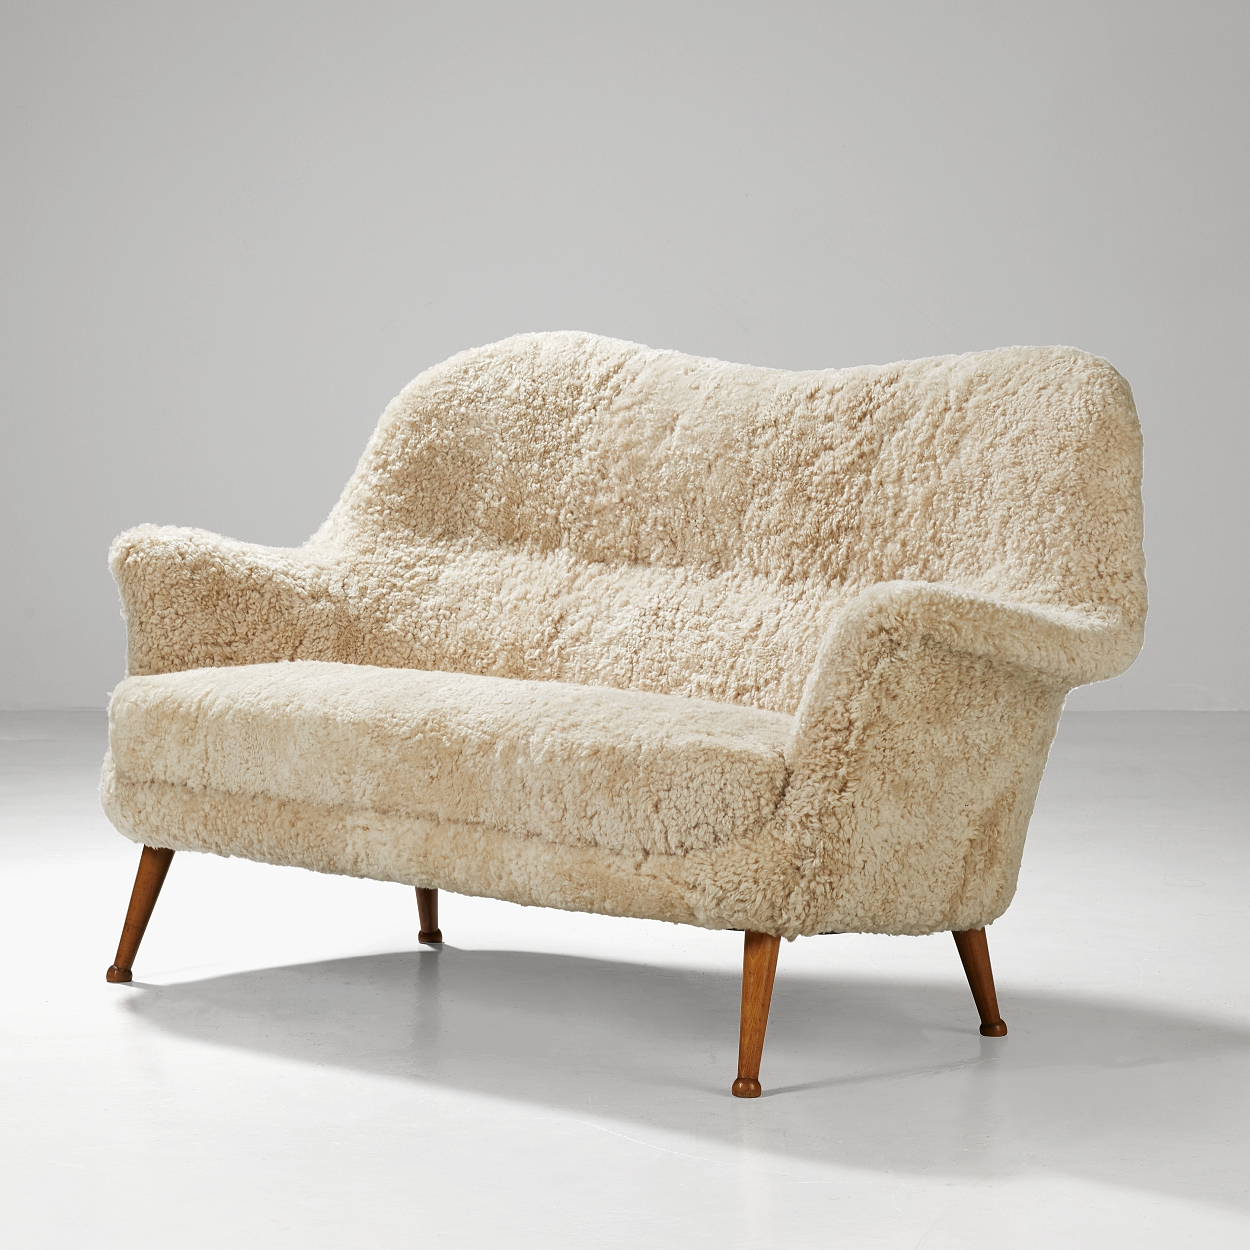 Arne Norell, attributed to, a sofa, 1960´s